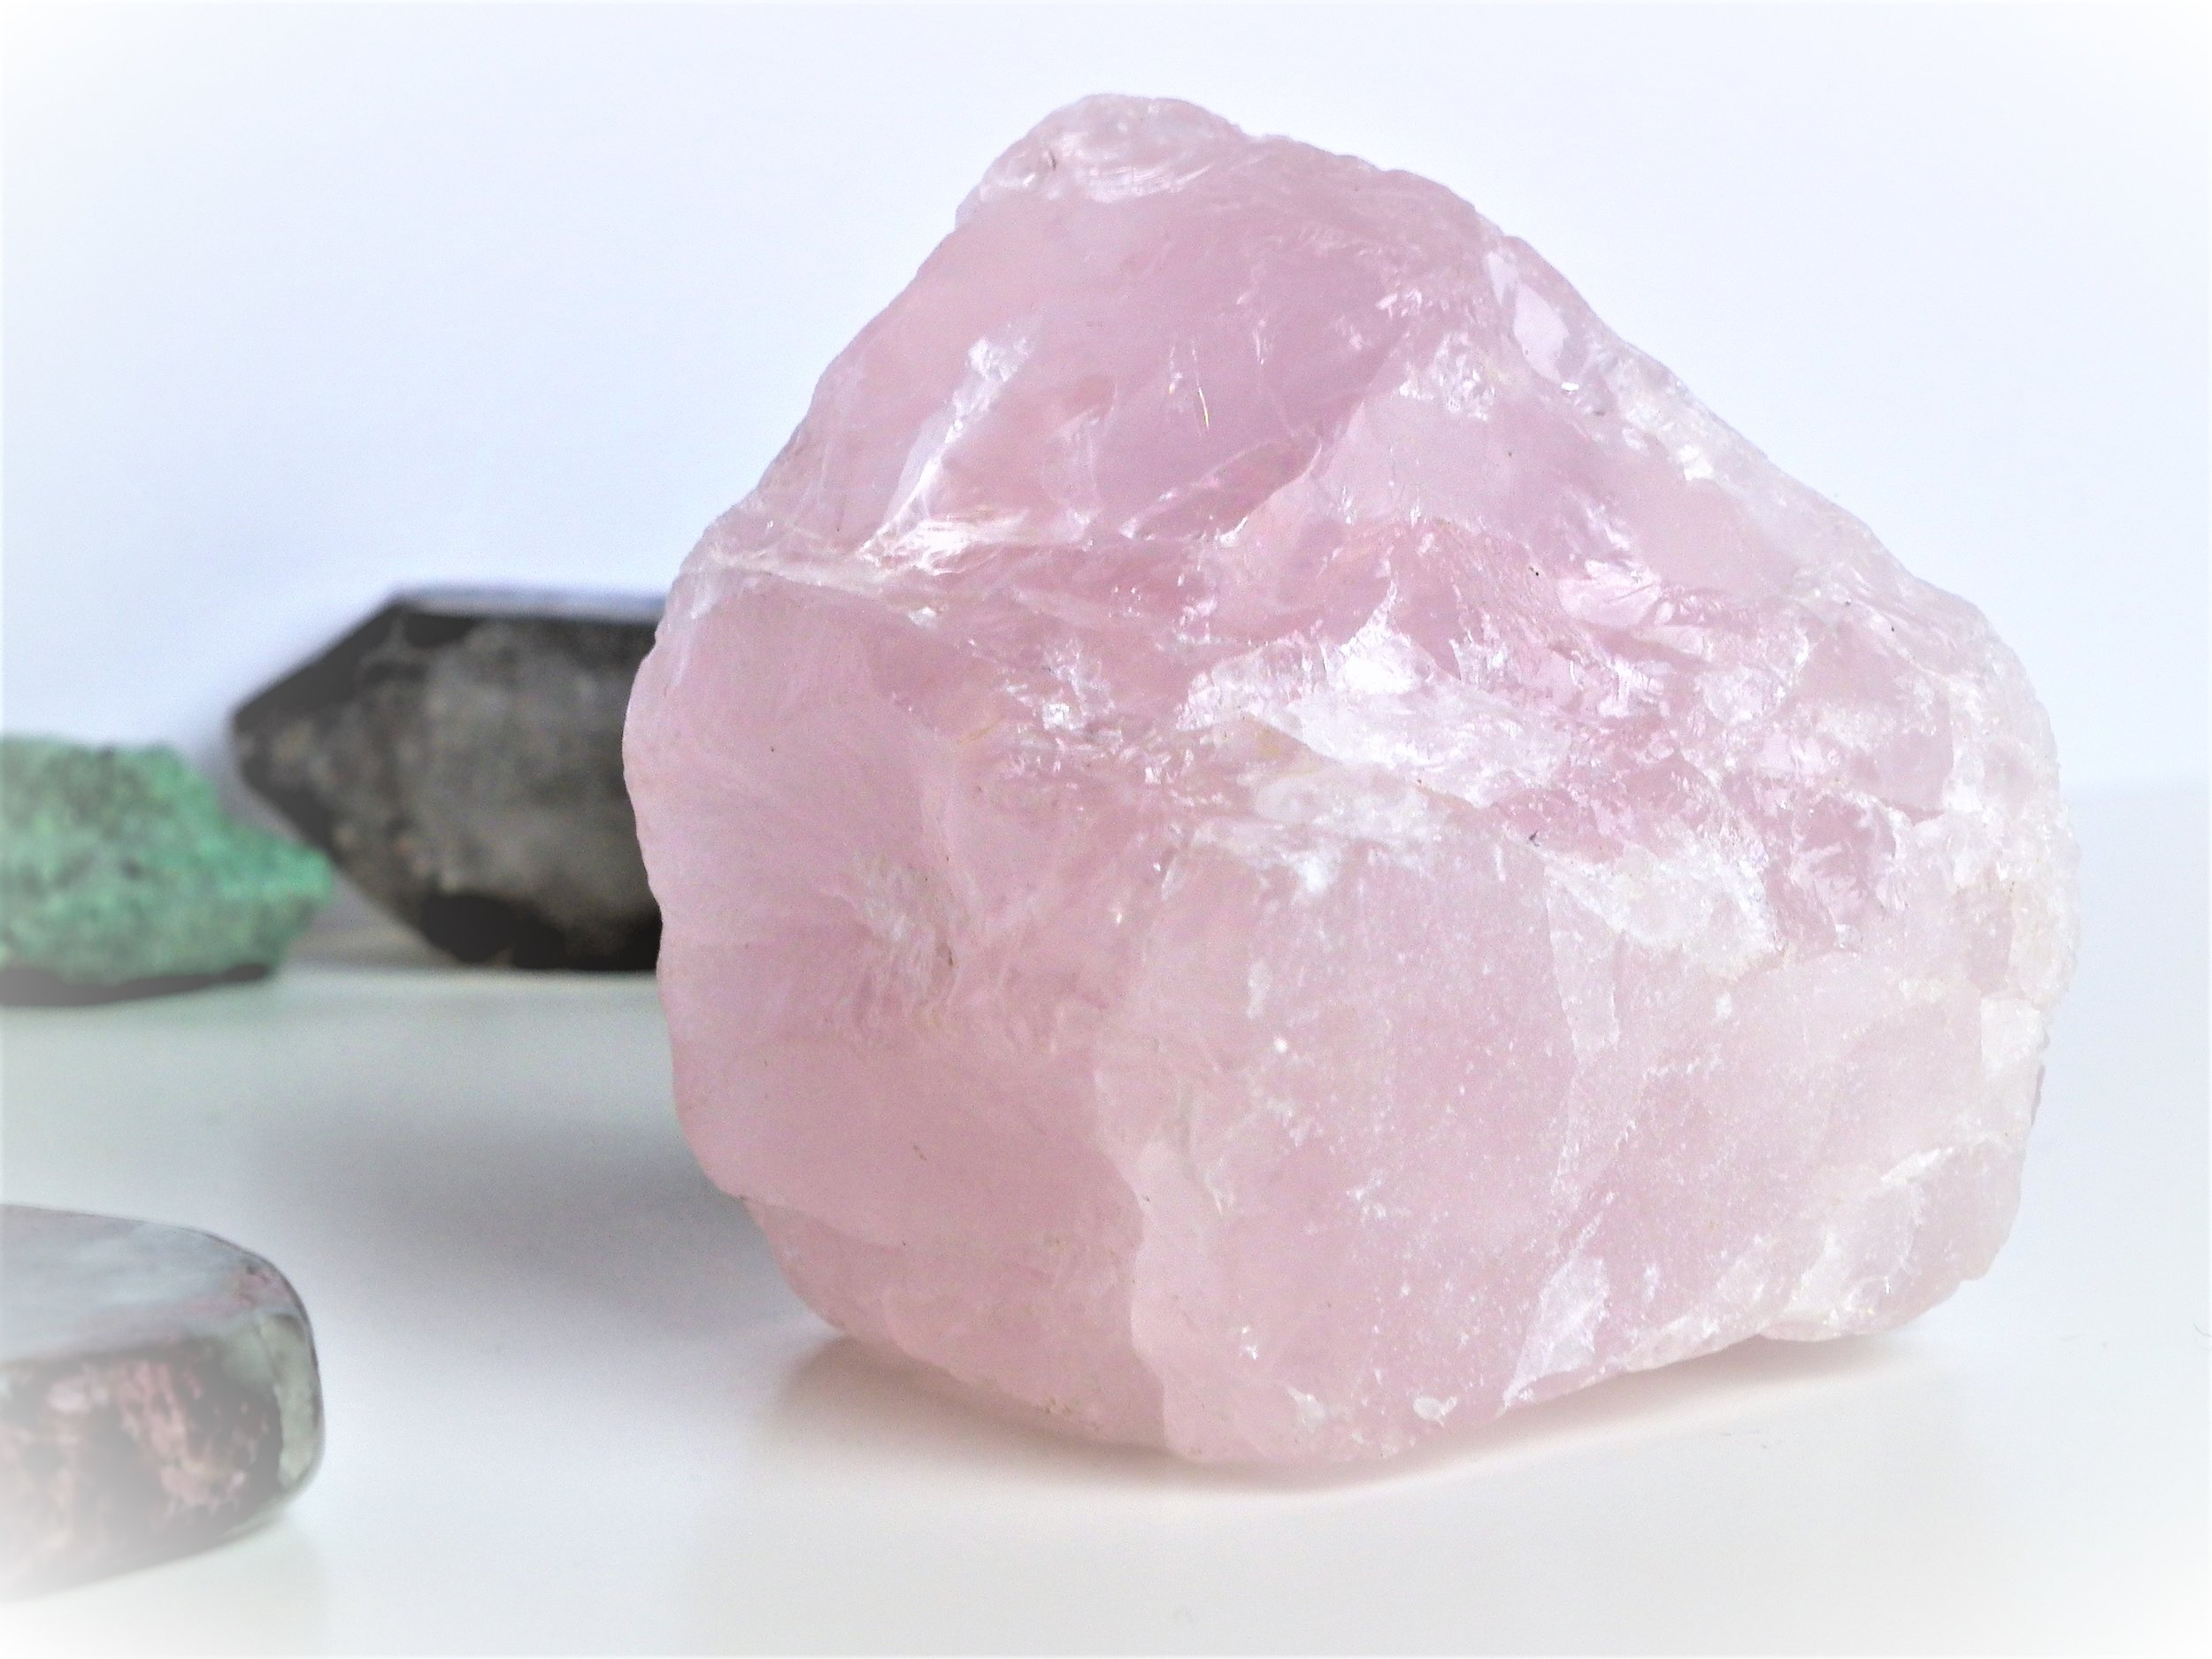 Crystals meaning crystals and stones crystal healing crystals for beginners how to use crystals crystal magic chakras throat chakra root chakra energy spirituality spiritual healing crystals gemstones gems stones